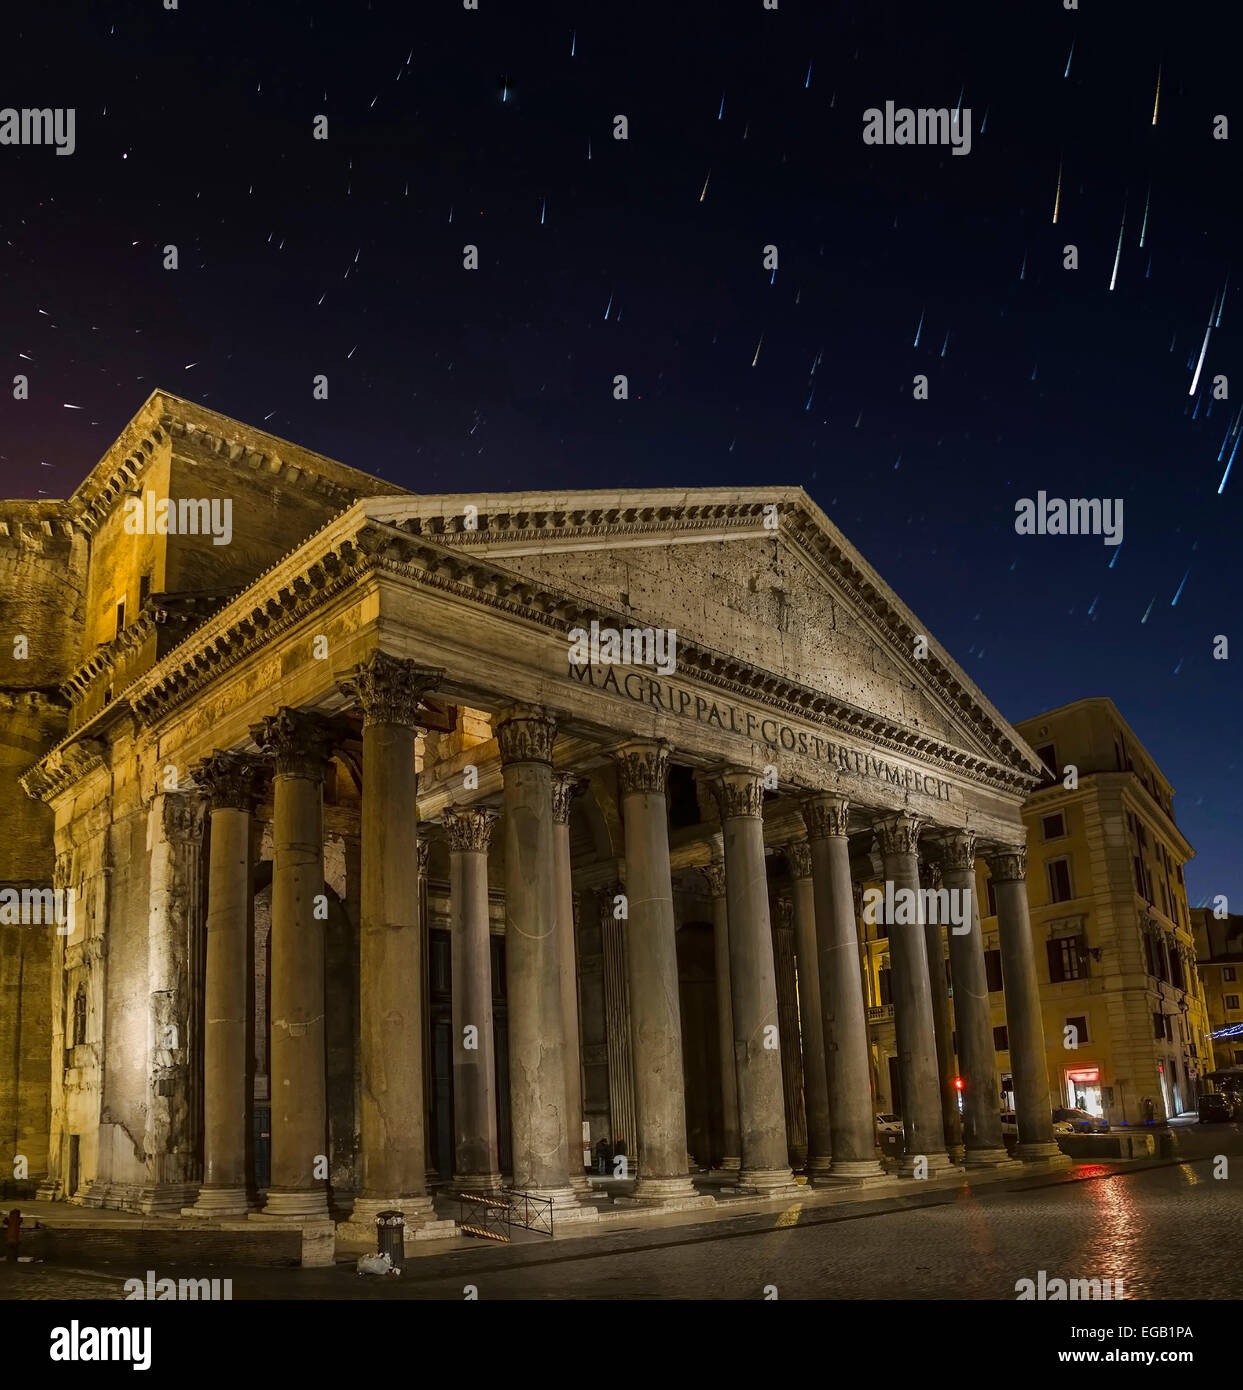 pantheon by night in rome star trails in the sky comets and falling stars Stock Photo